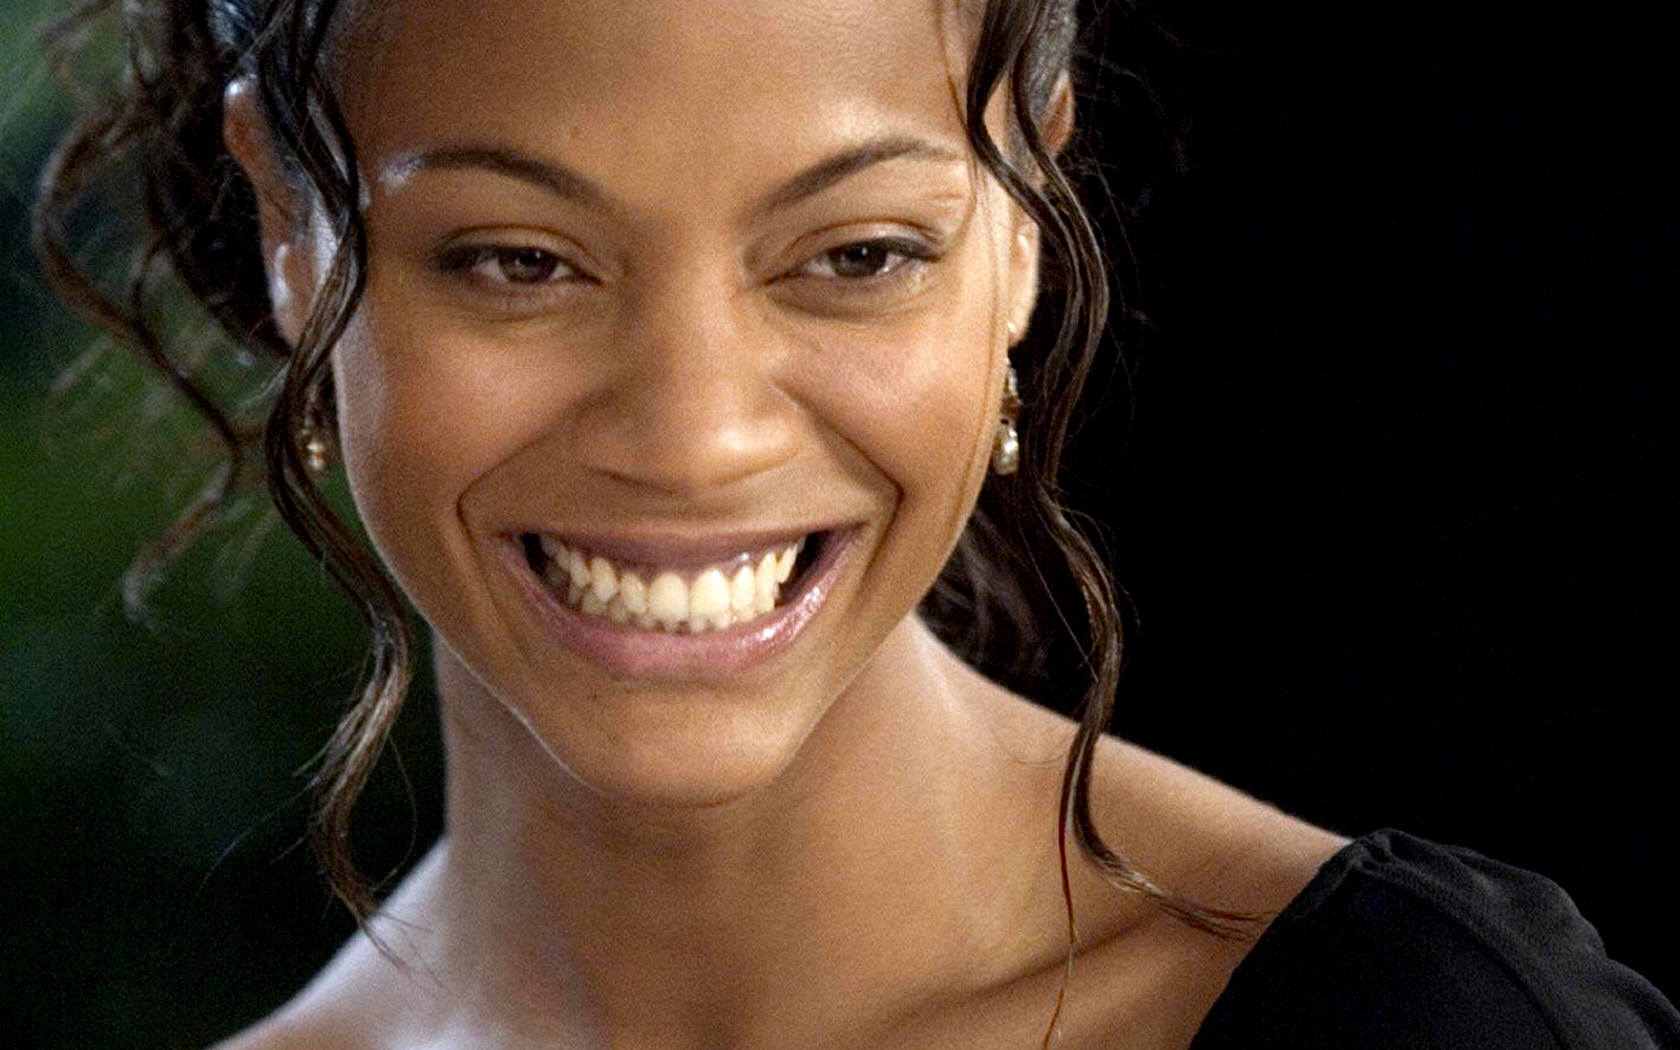 Zoe saldana zoe saldana widescreen wallpaper